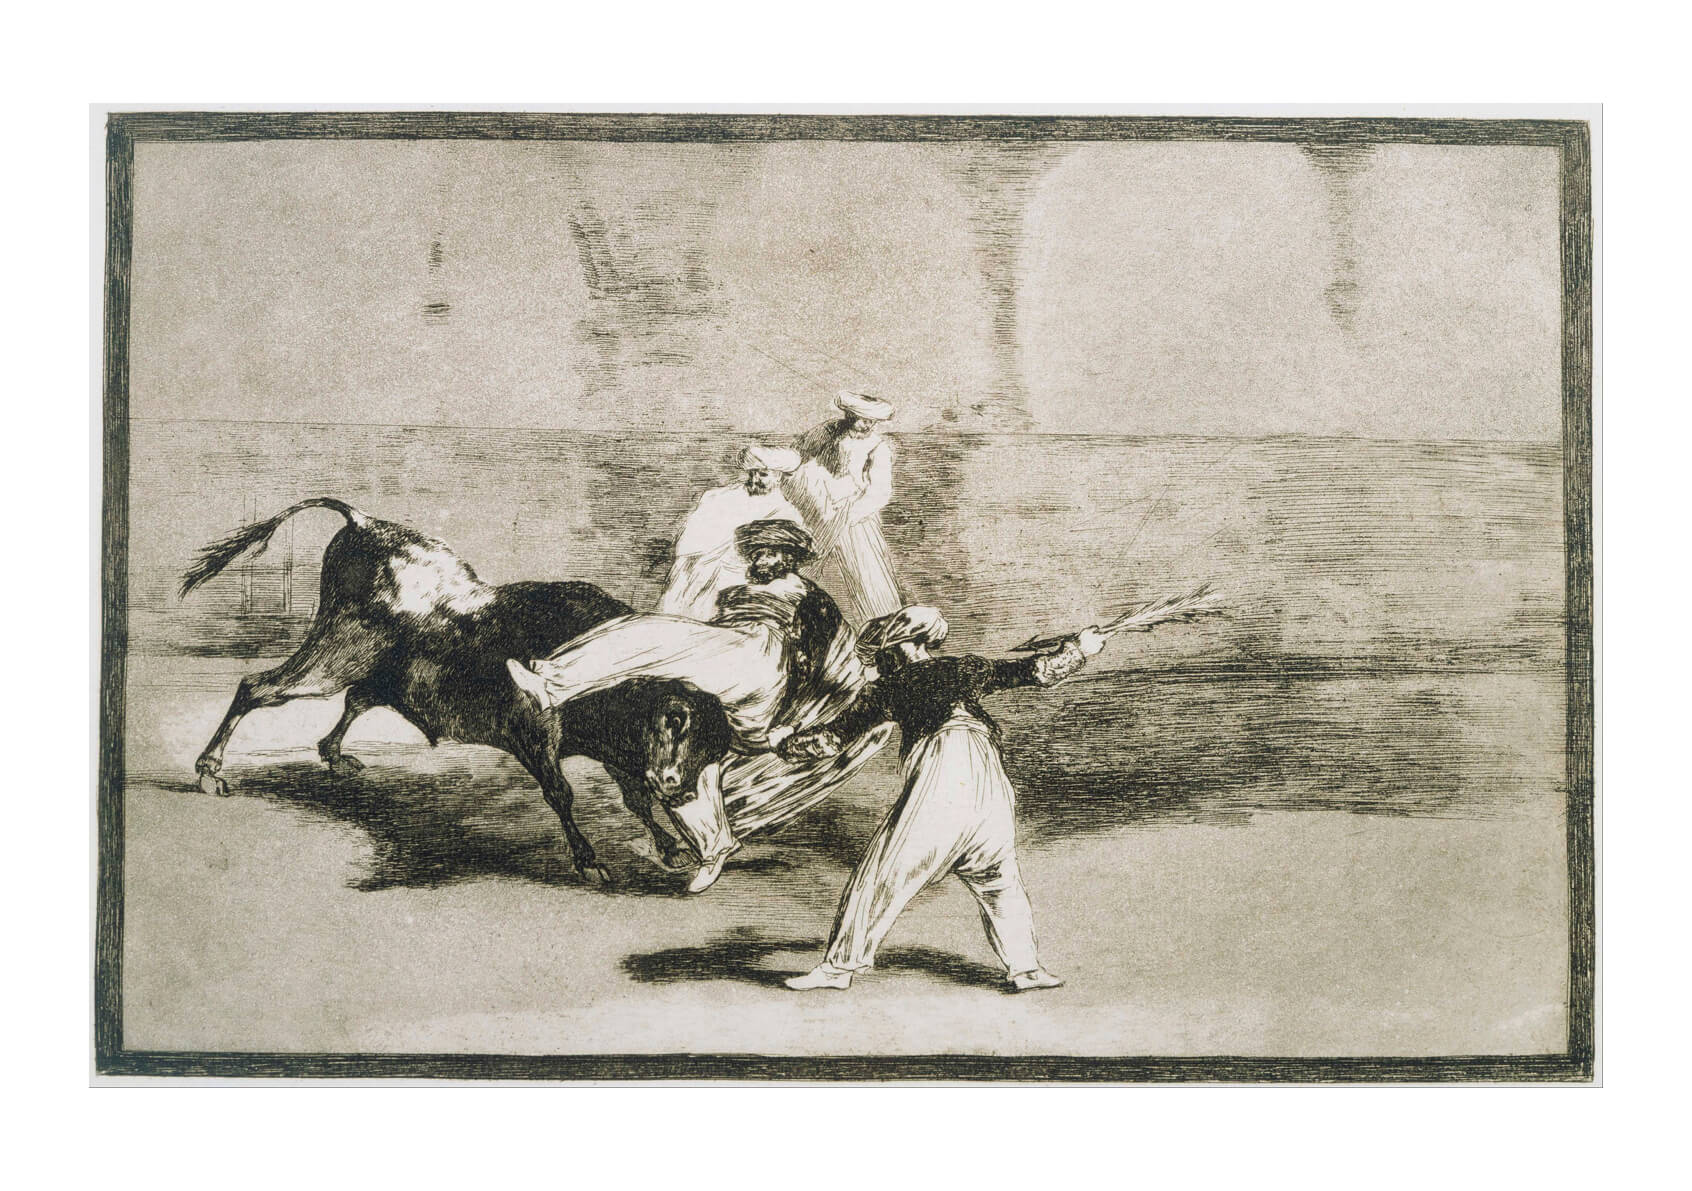 Francisco de Goya - Caught by the Bull